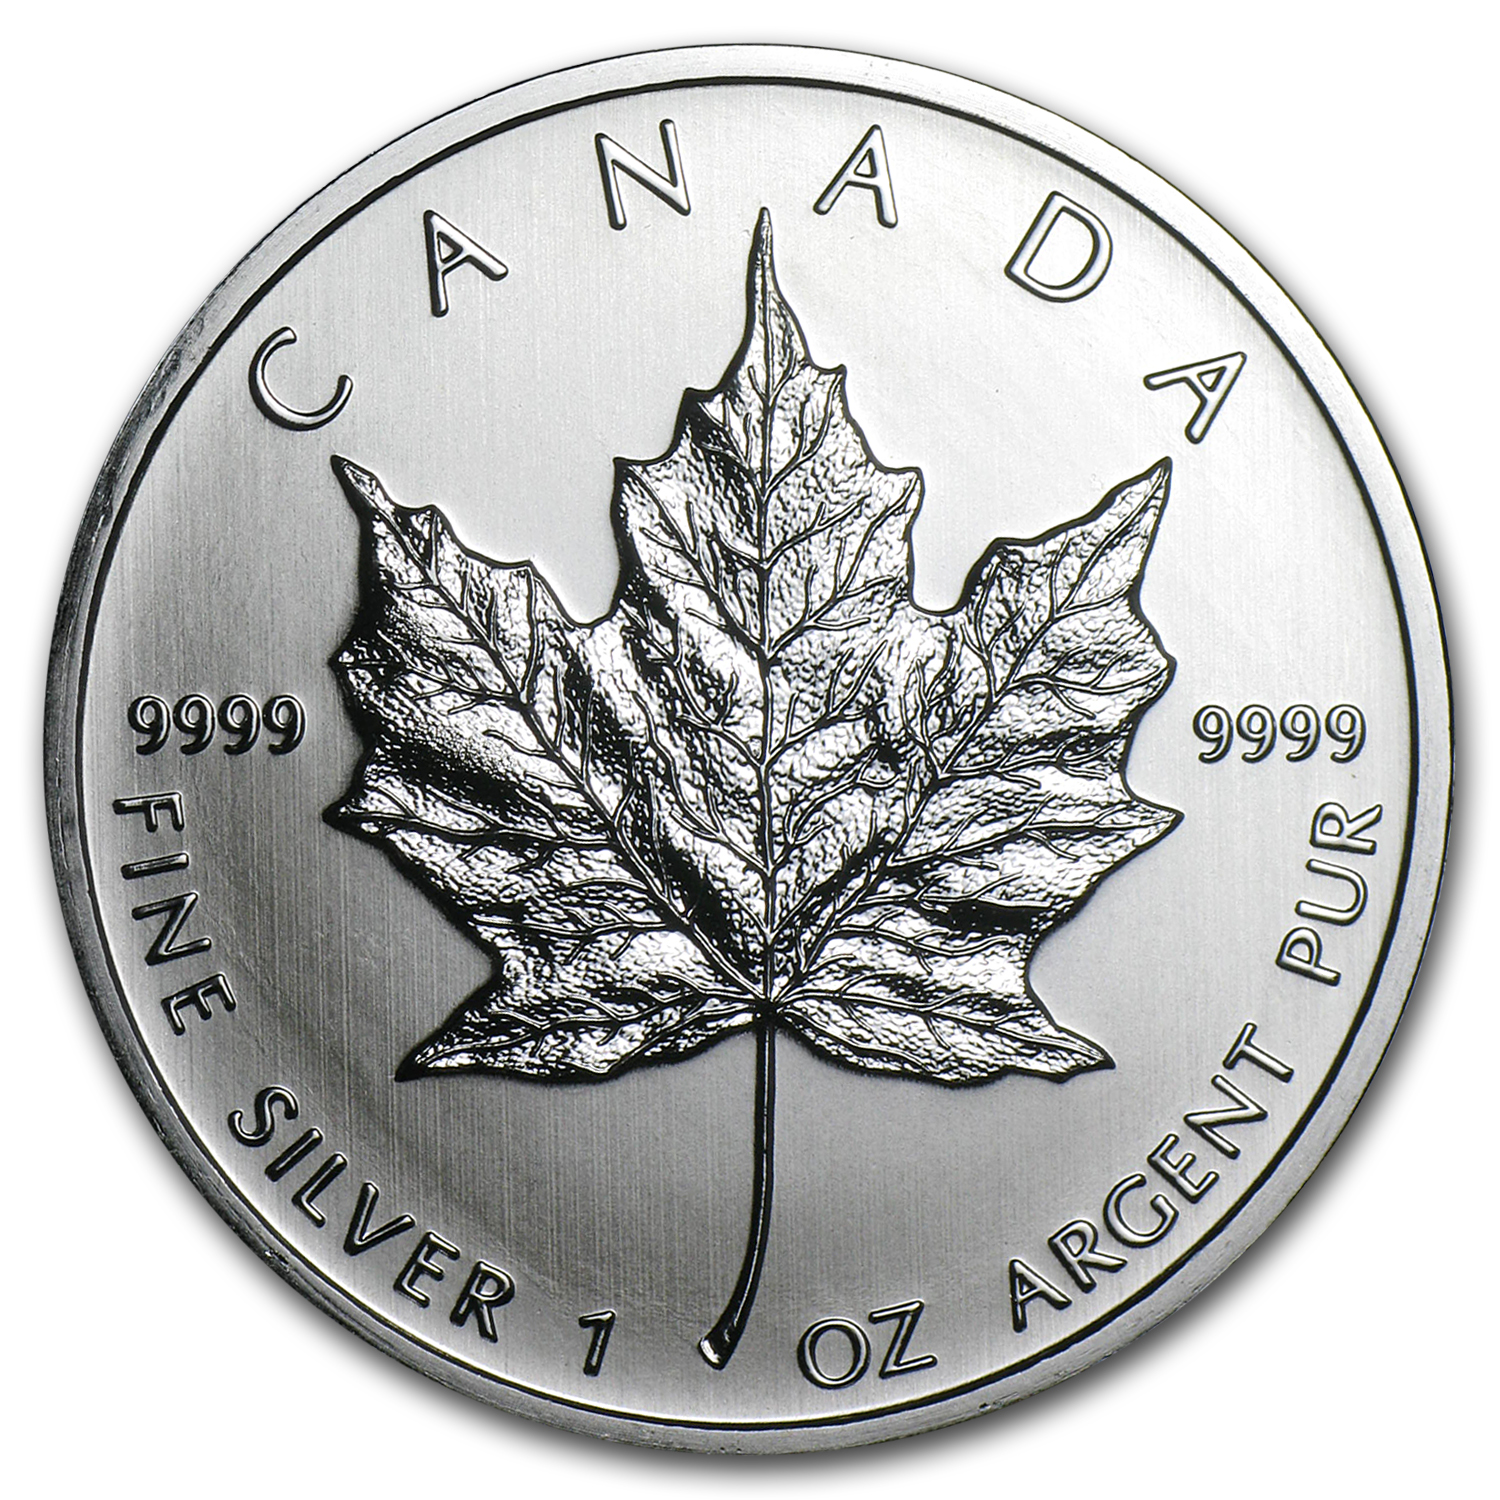 2011 1 oz Silver Canadian Maple Leaf BU